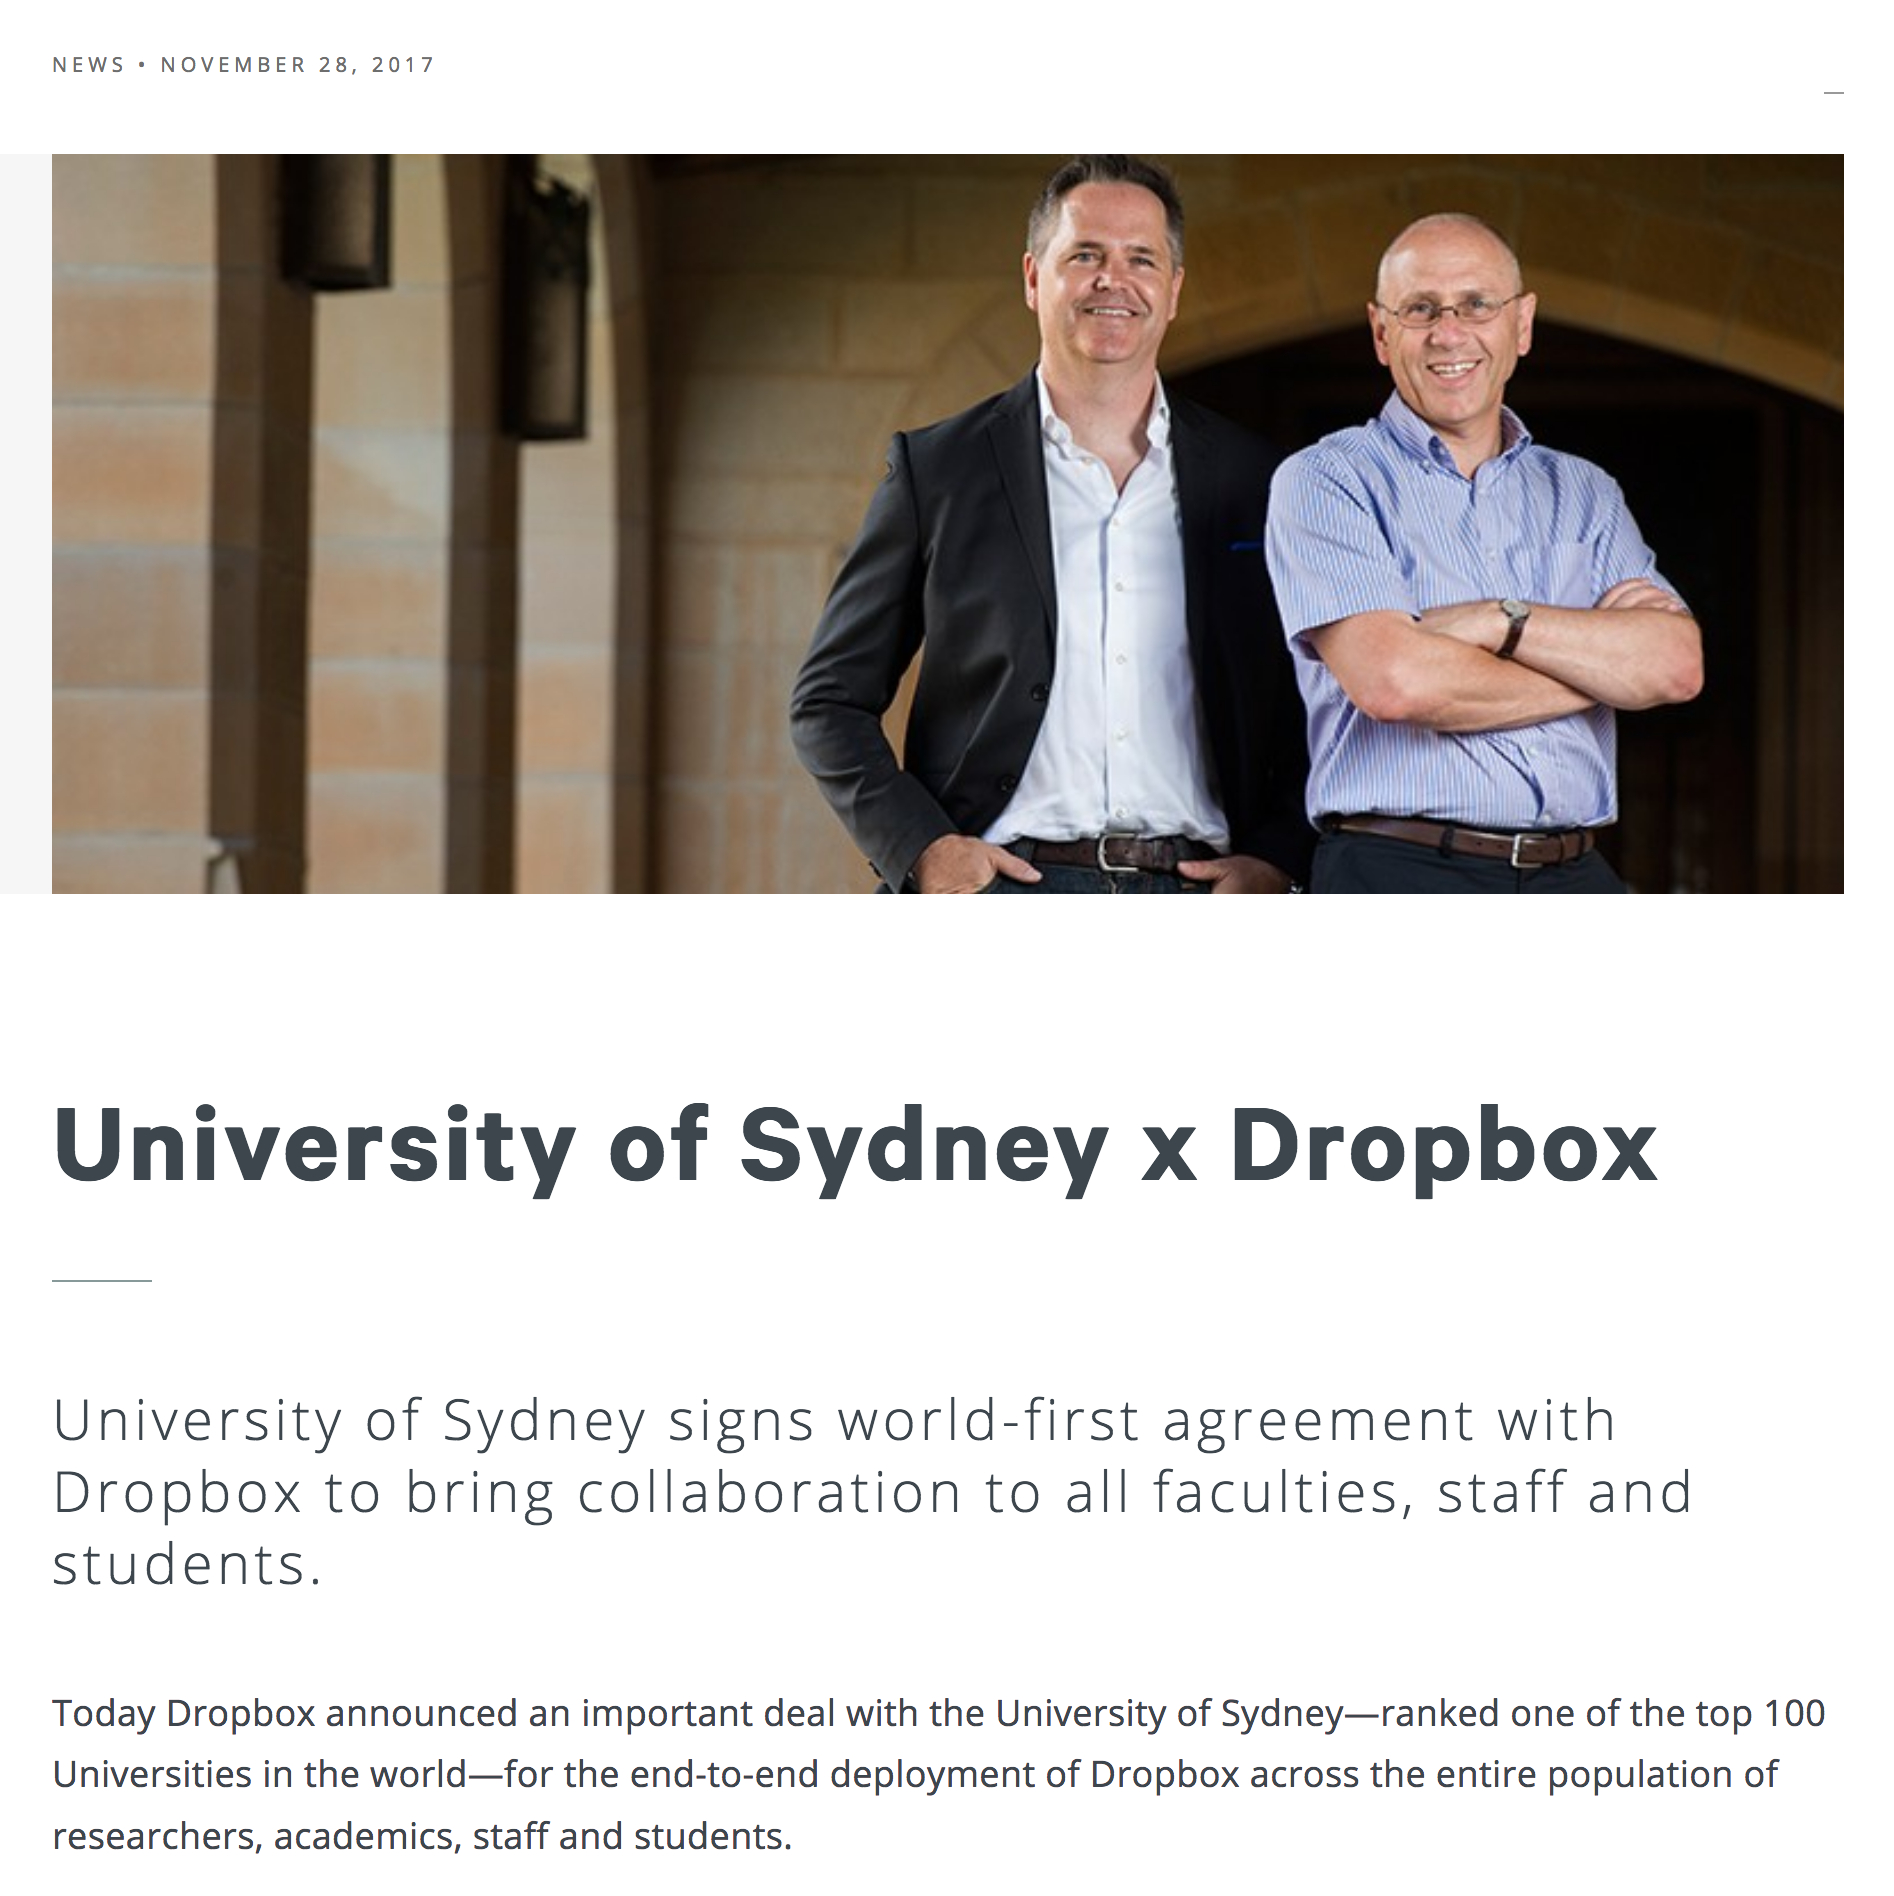 University_of_Sydney_x_Dropbox_Drop_Everything_-_2018-04-24_13.58.40.jpg